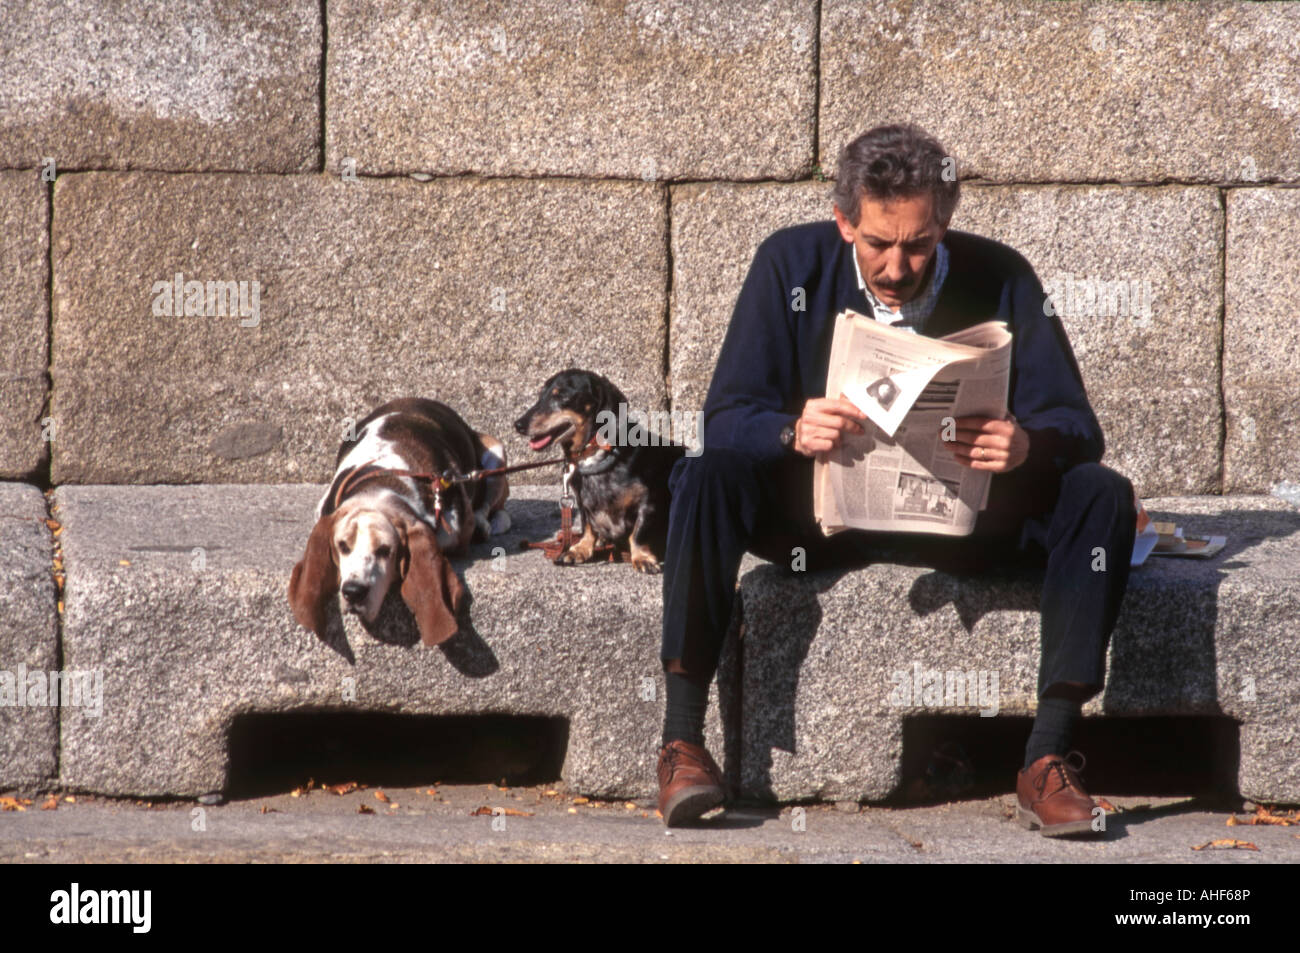 Man sitting reading newspaper with two dogs. El Escorial, Spain. - Stock Image